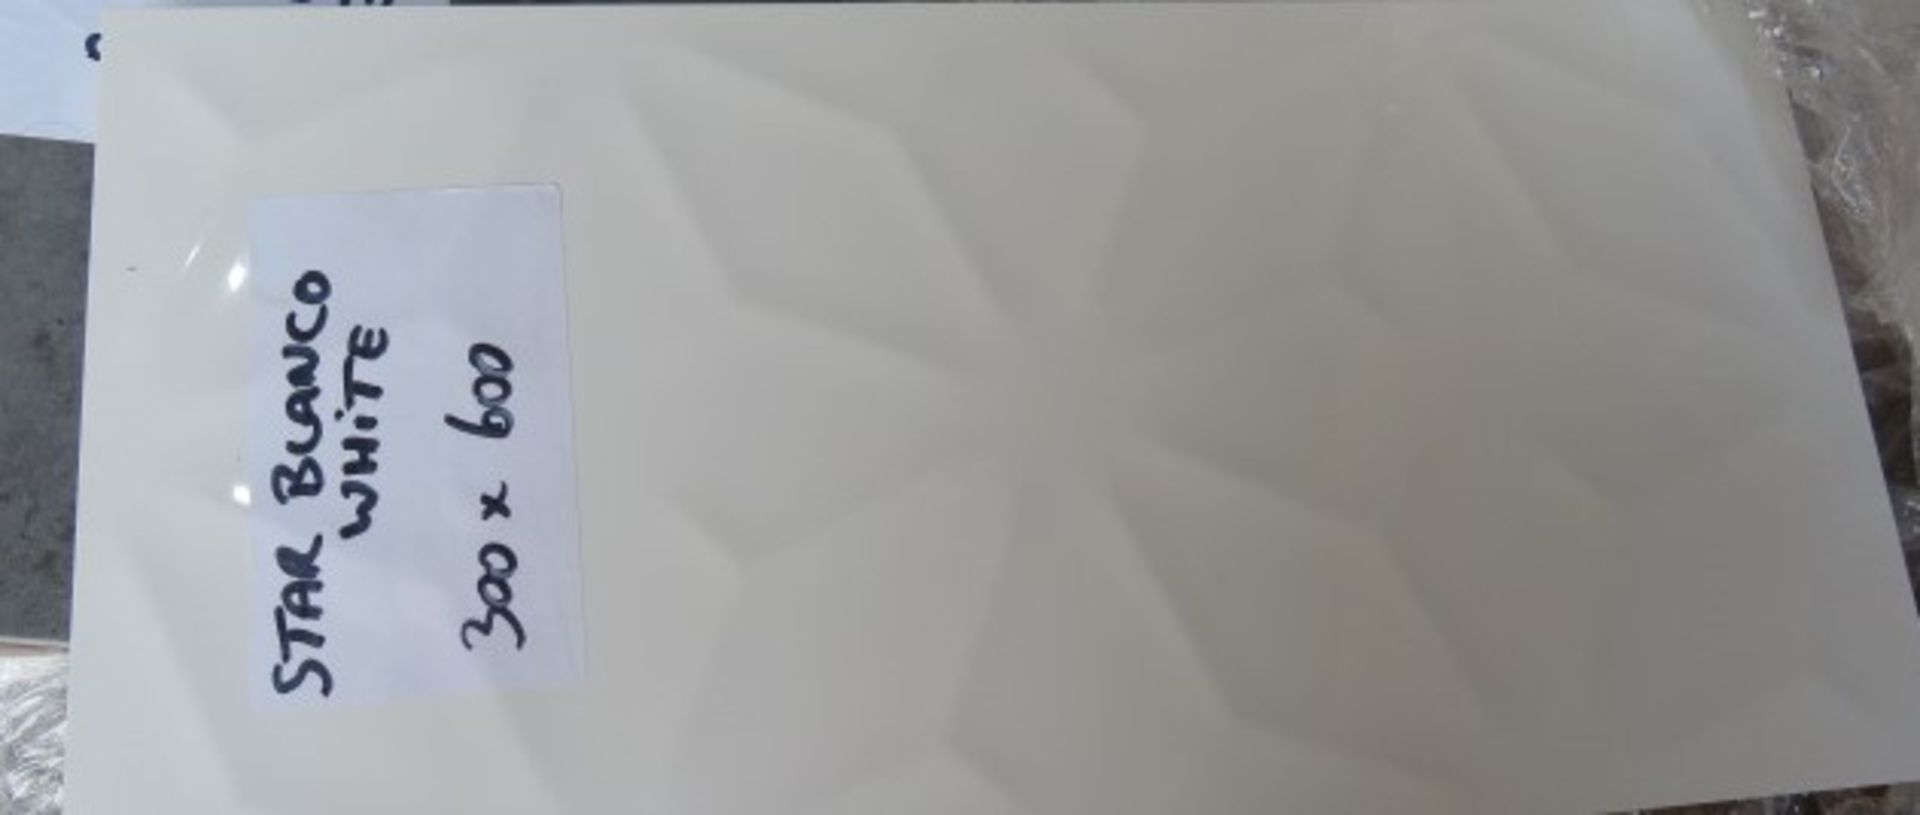 NEW 8.55 Square Meters of 3D White Star Effect Wall and Floor Tiles. 300x600mm per tile. 8mm - Image 3 of 3